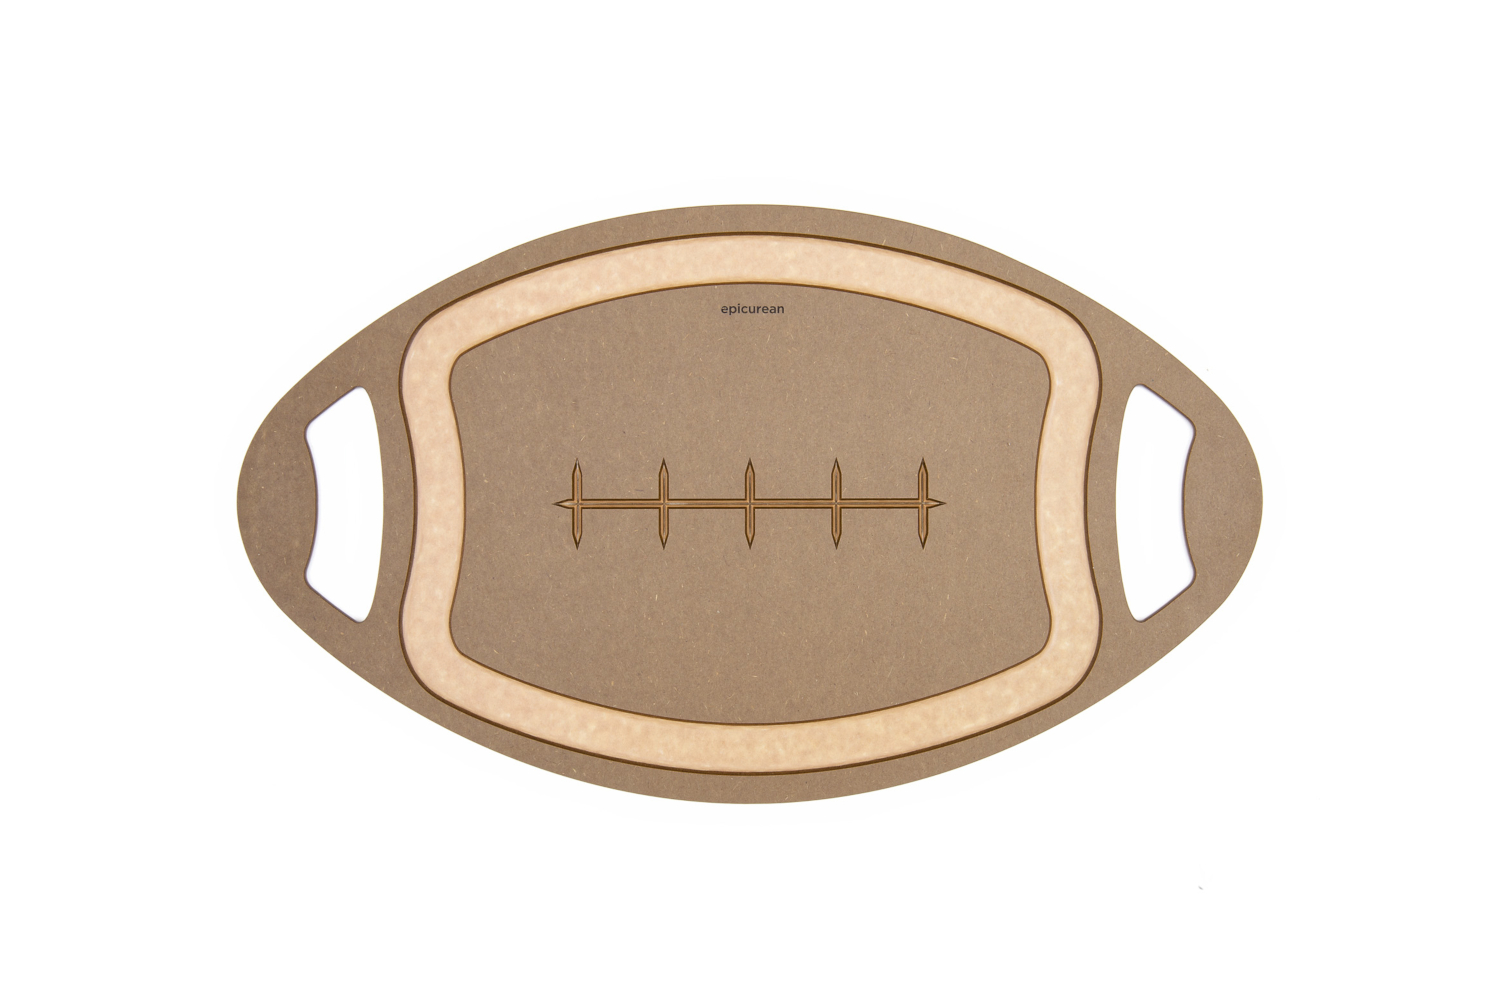 Epicurean Football Board